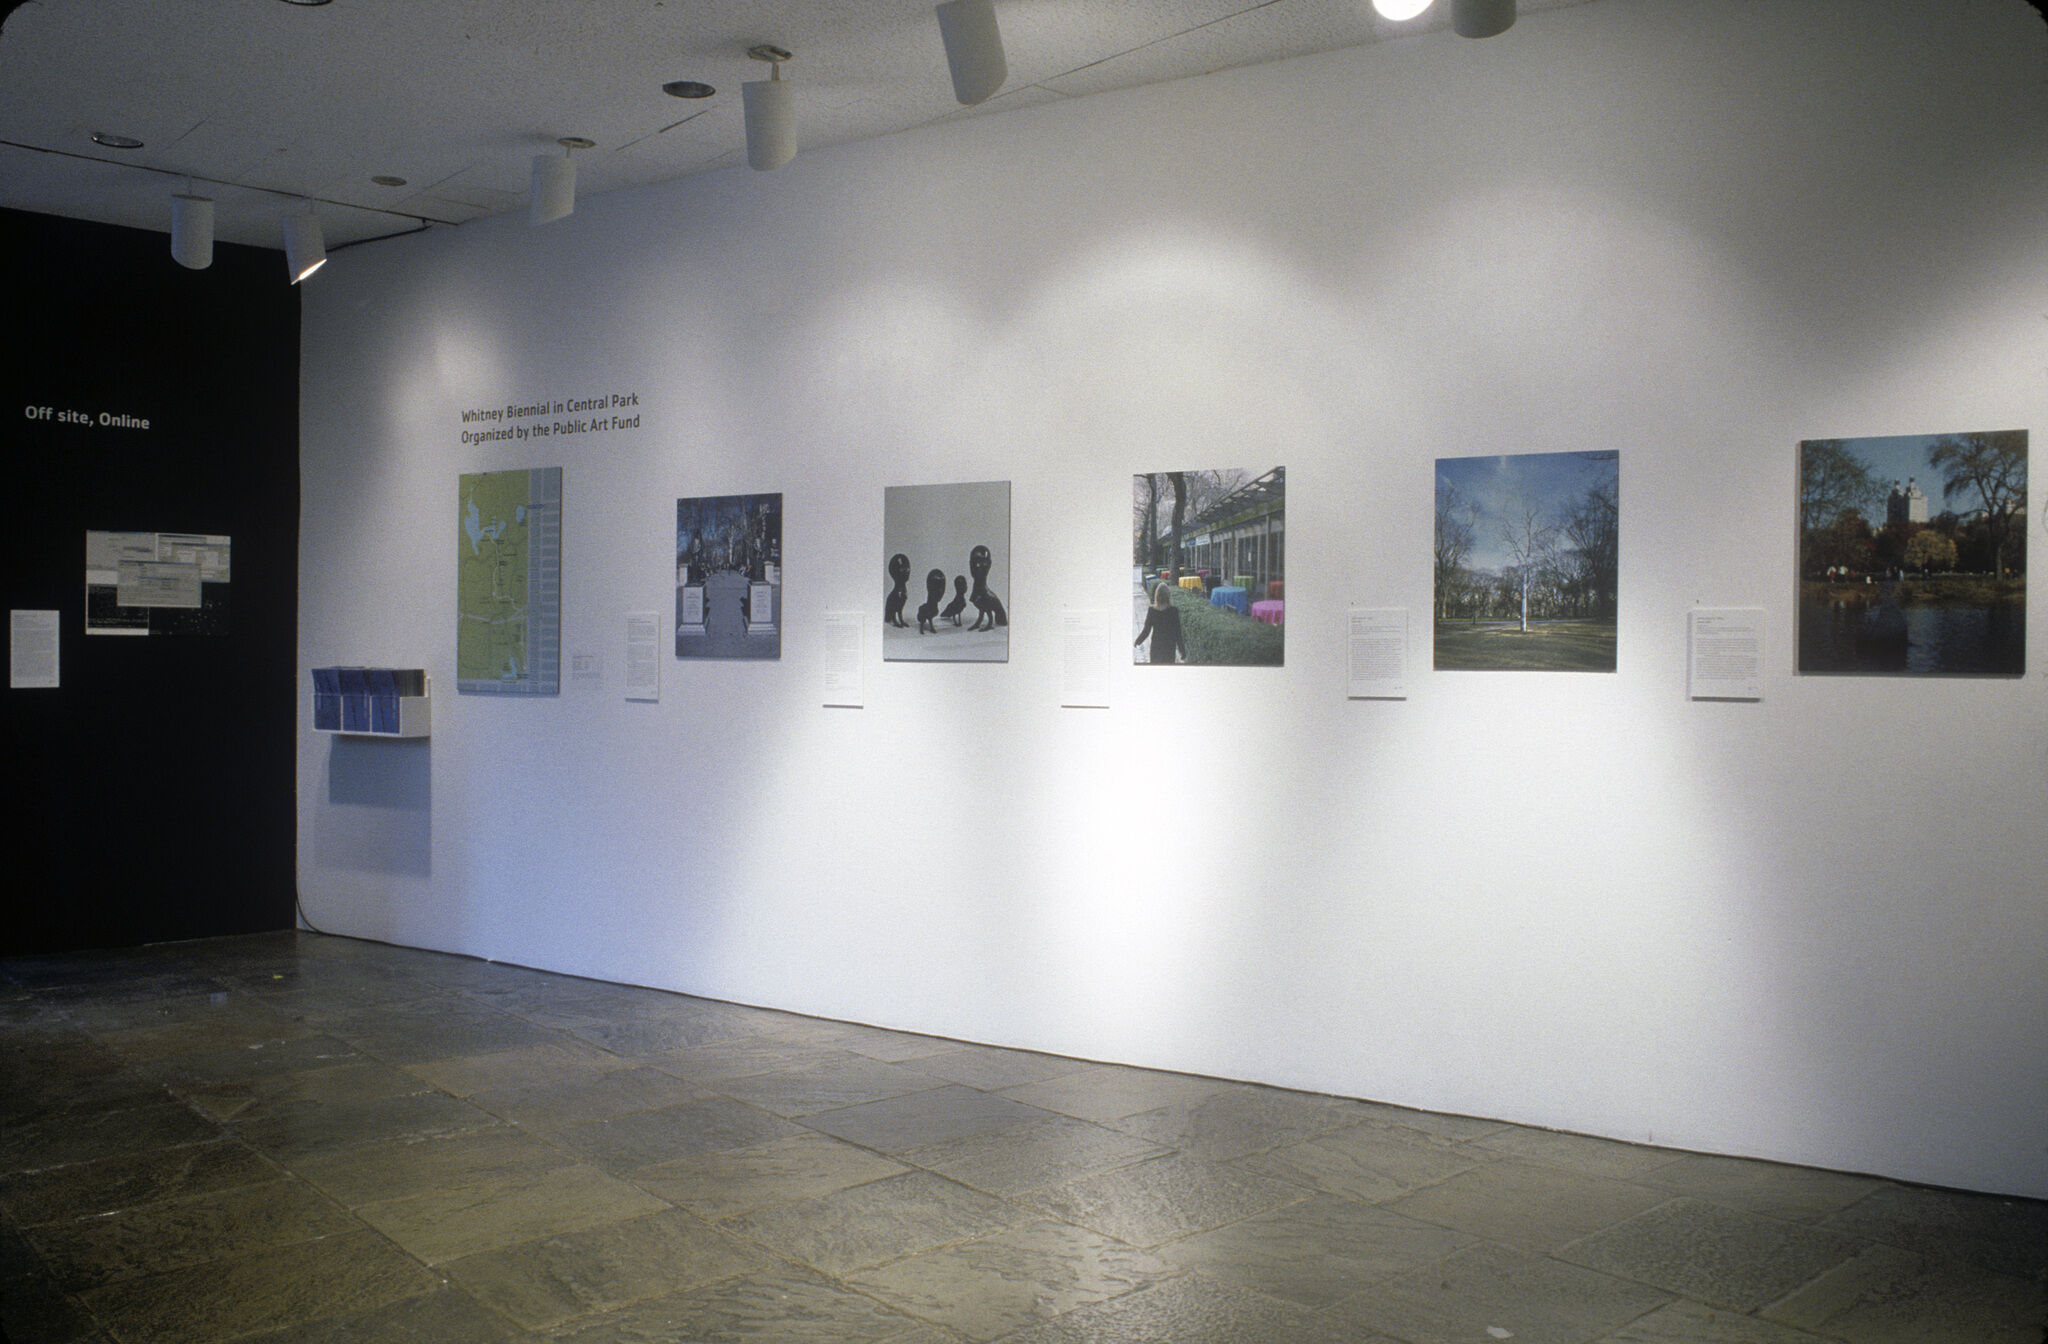 A gallery with photographs displayed on the wall.